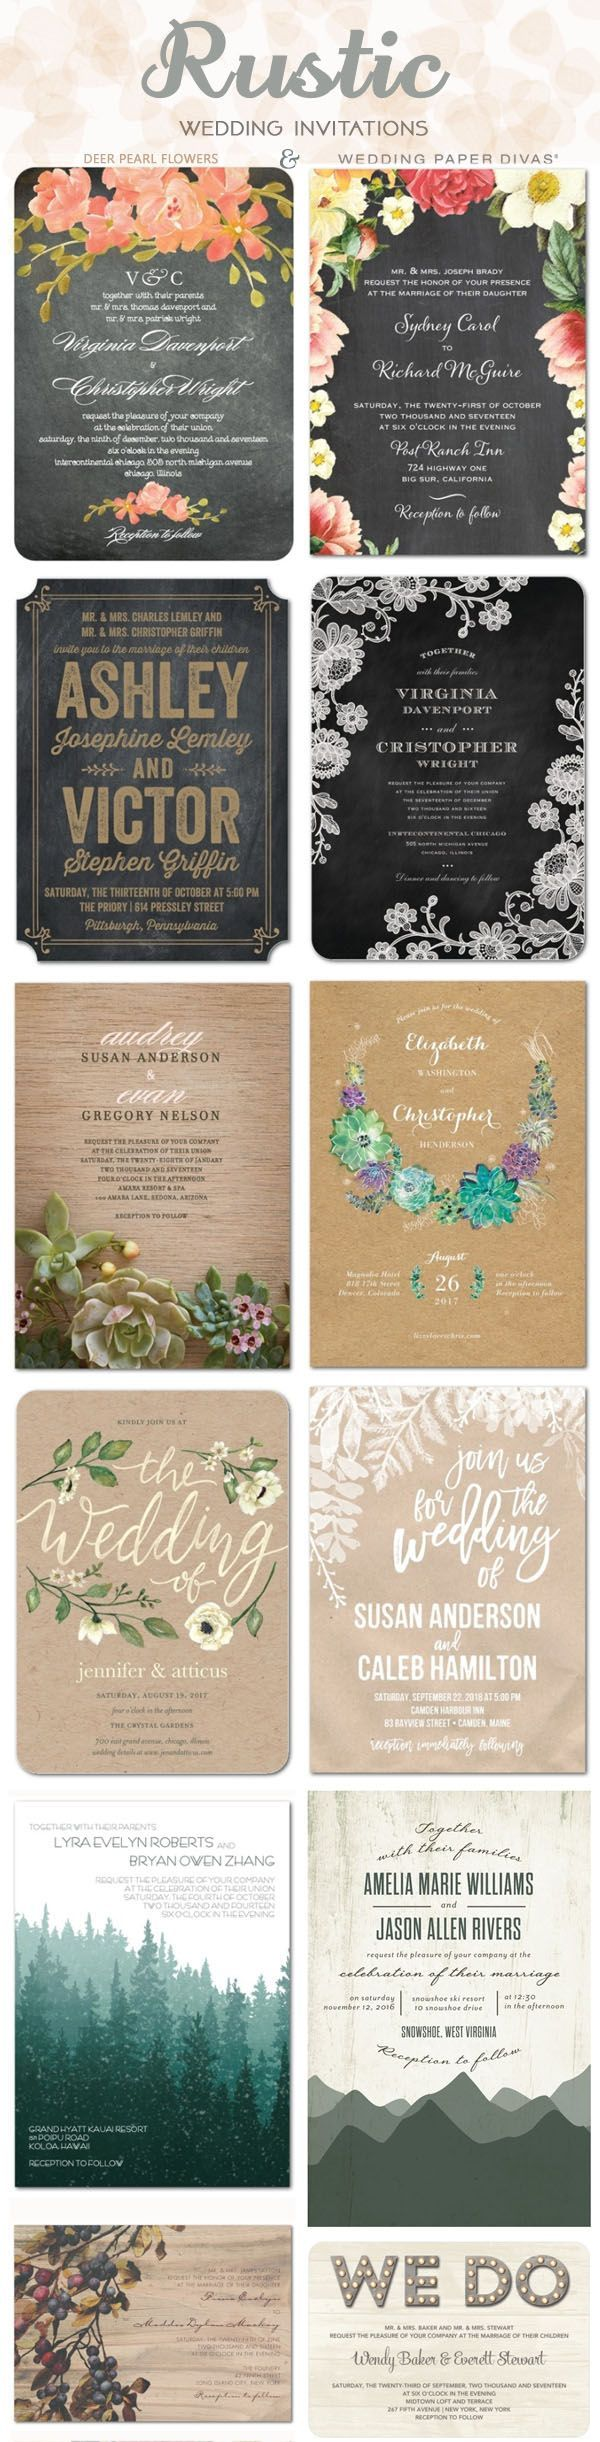 wildflower wedding invitation templates%0A Rustic country wedding invitations ideas   http   www deerpearlflowers com